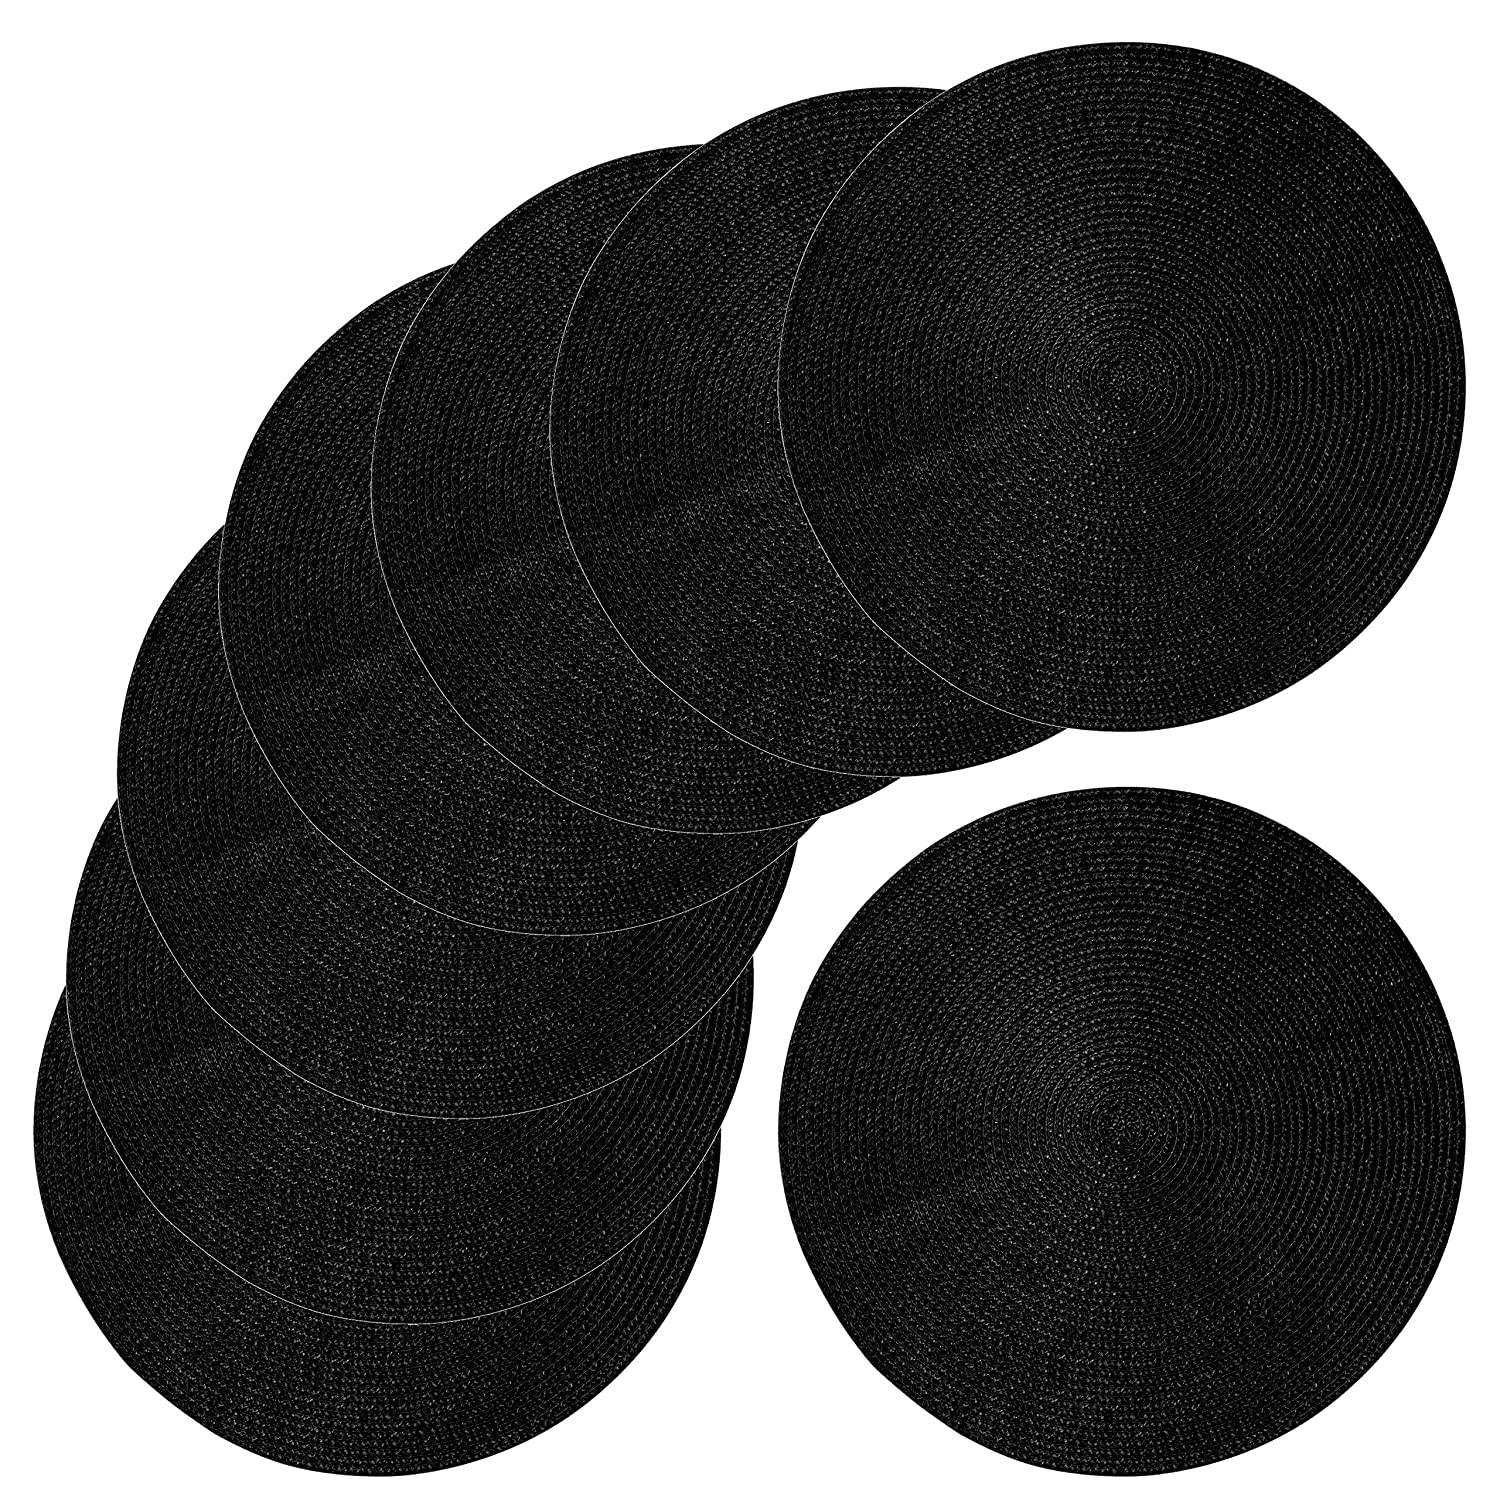 tag 15-Inch Braided Placemat 8-Pack, Black 8P32300